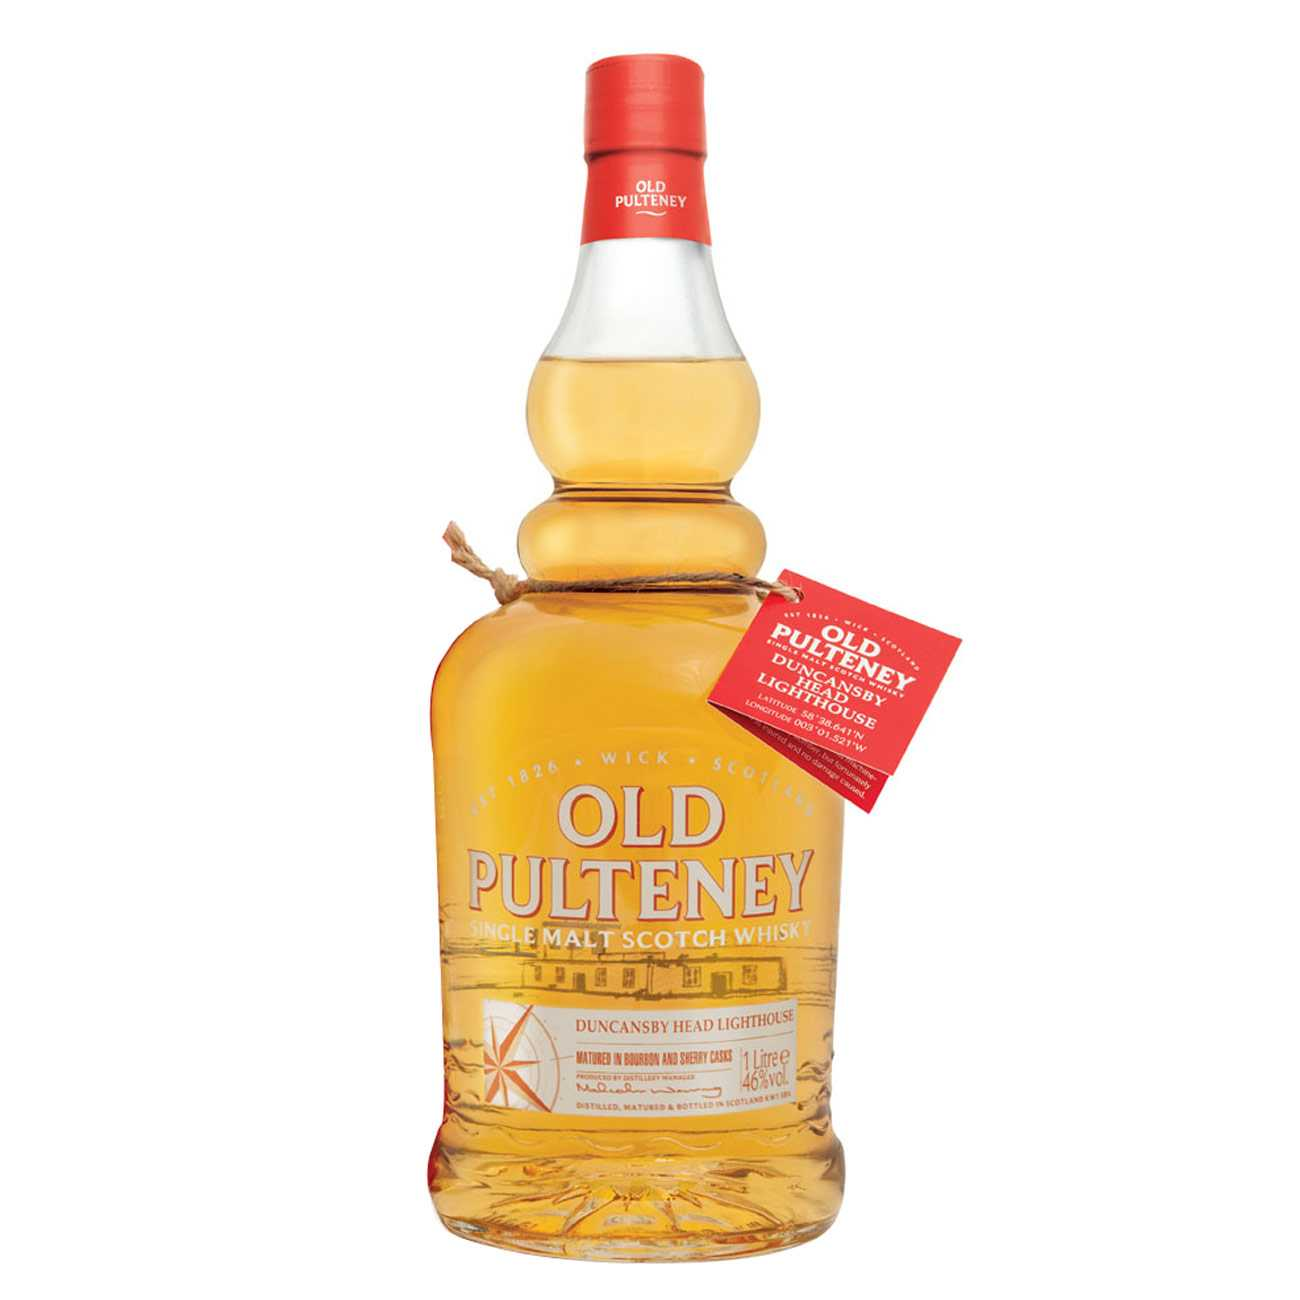 Whisky scotian, DUCANSBY LIGHTHOUSE 1000 ML, Old Pulteney